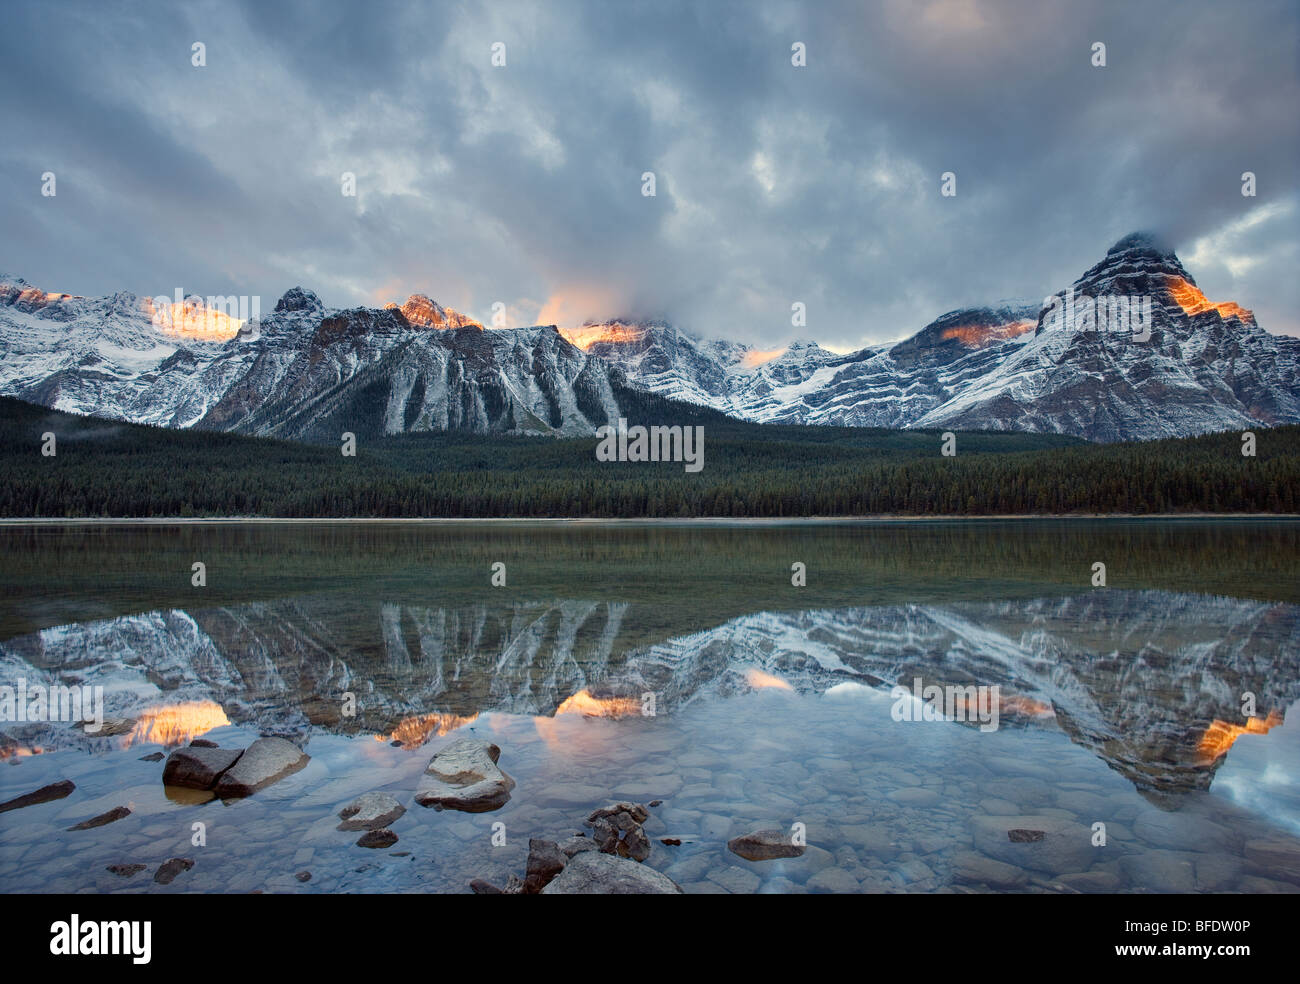 Mount Chephren reflected in Upper Waterfowl Lake, Banff National Park, Alberta, Canada - Stock Image